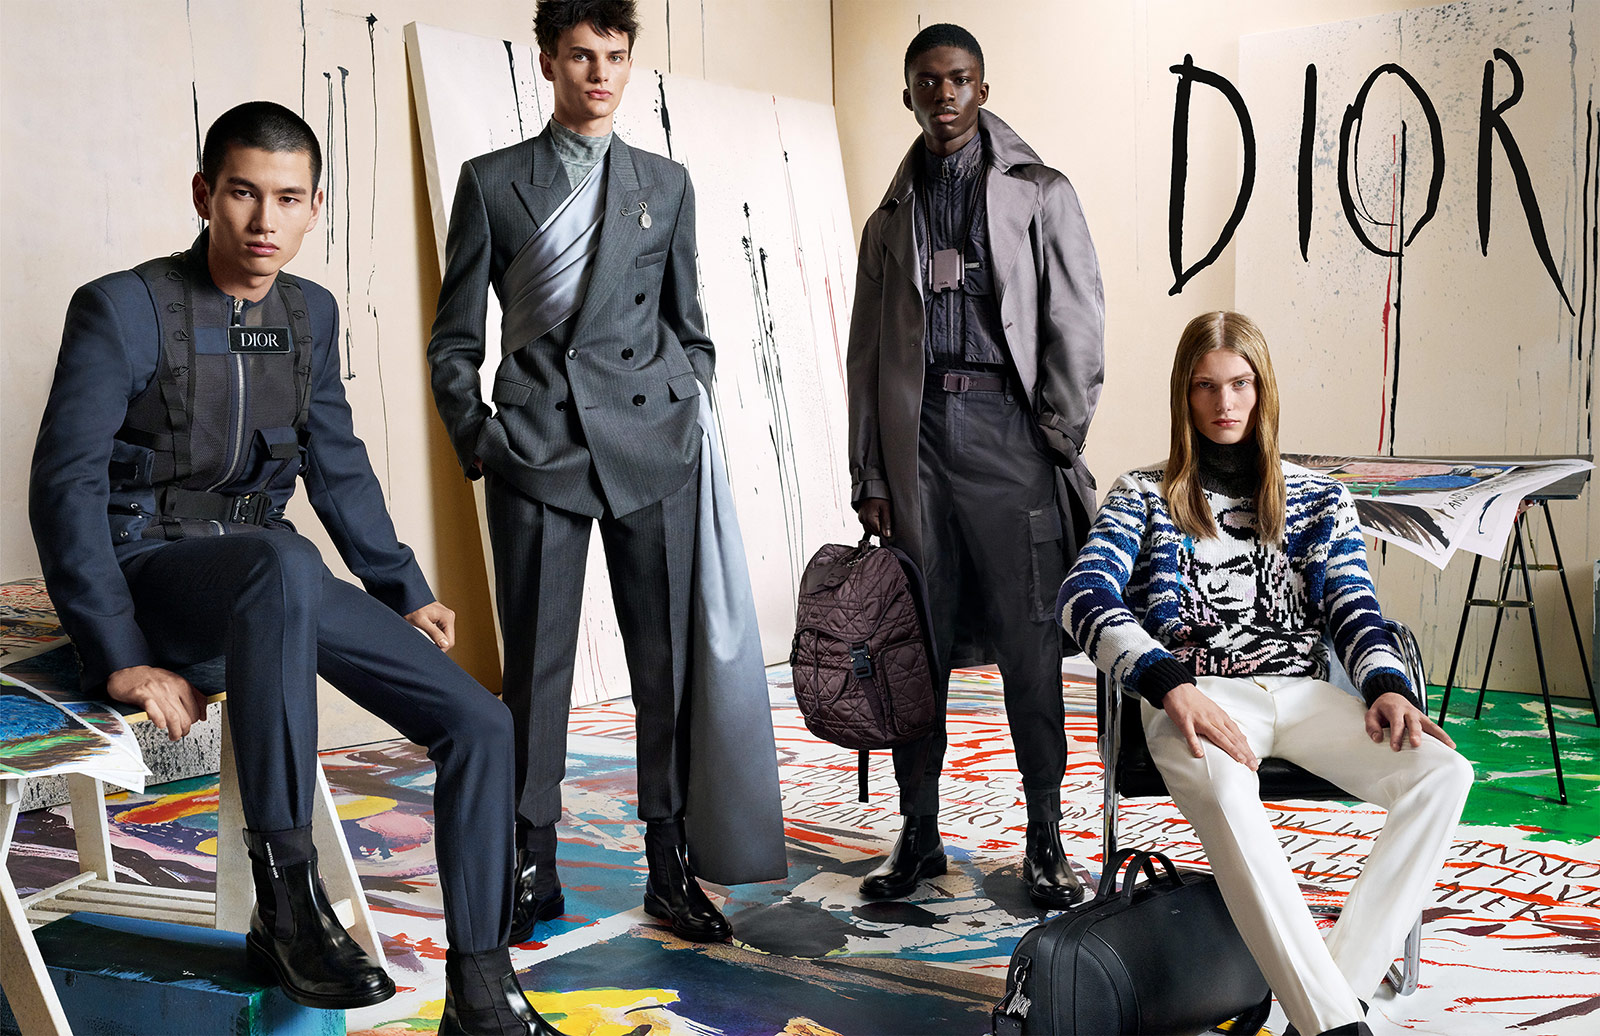 Dior autumn winter 2019 2020 campaign 3